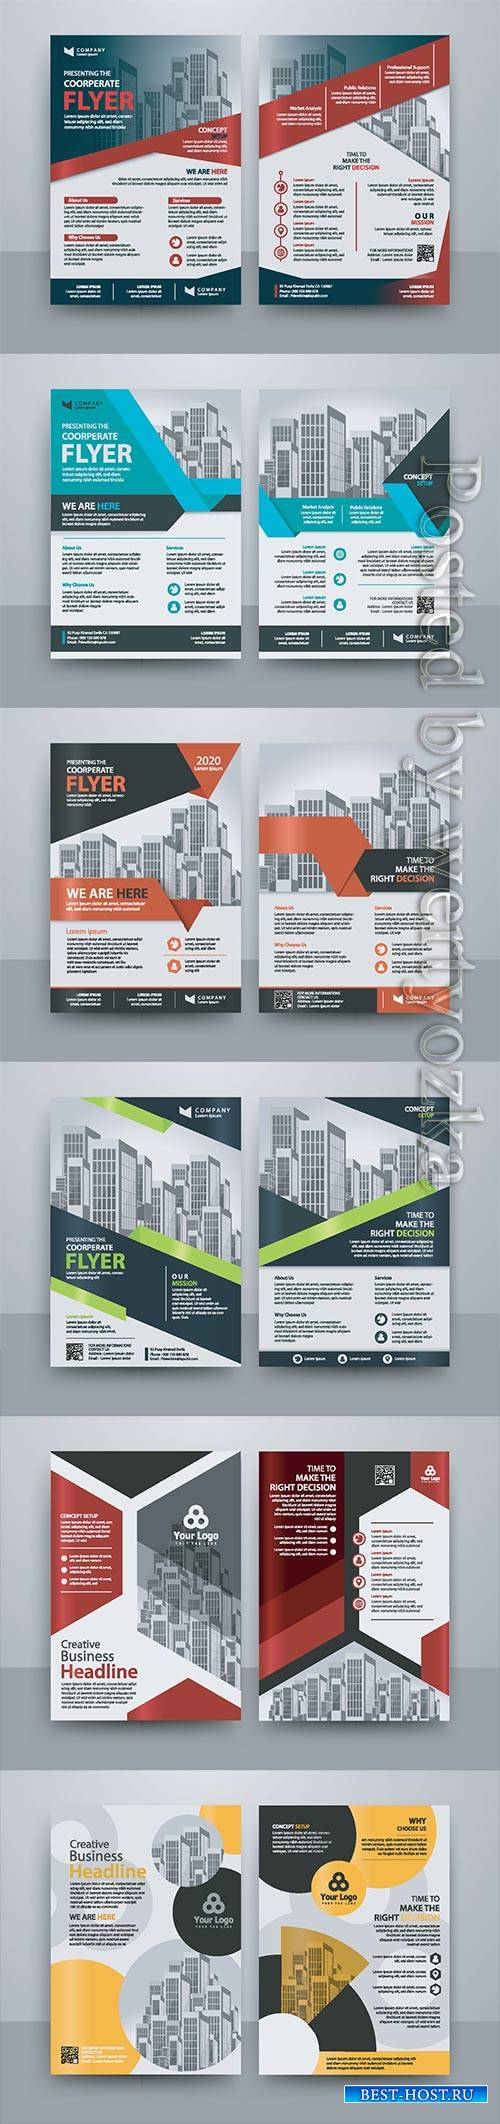 Business vector template for brochure, annual report, magazine # 21